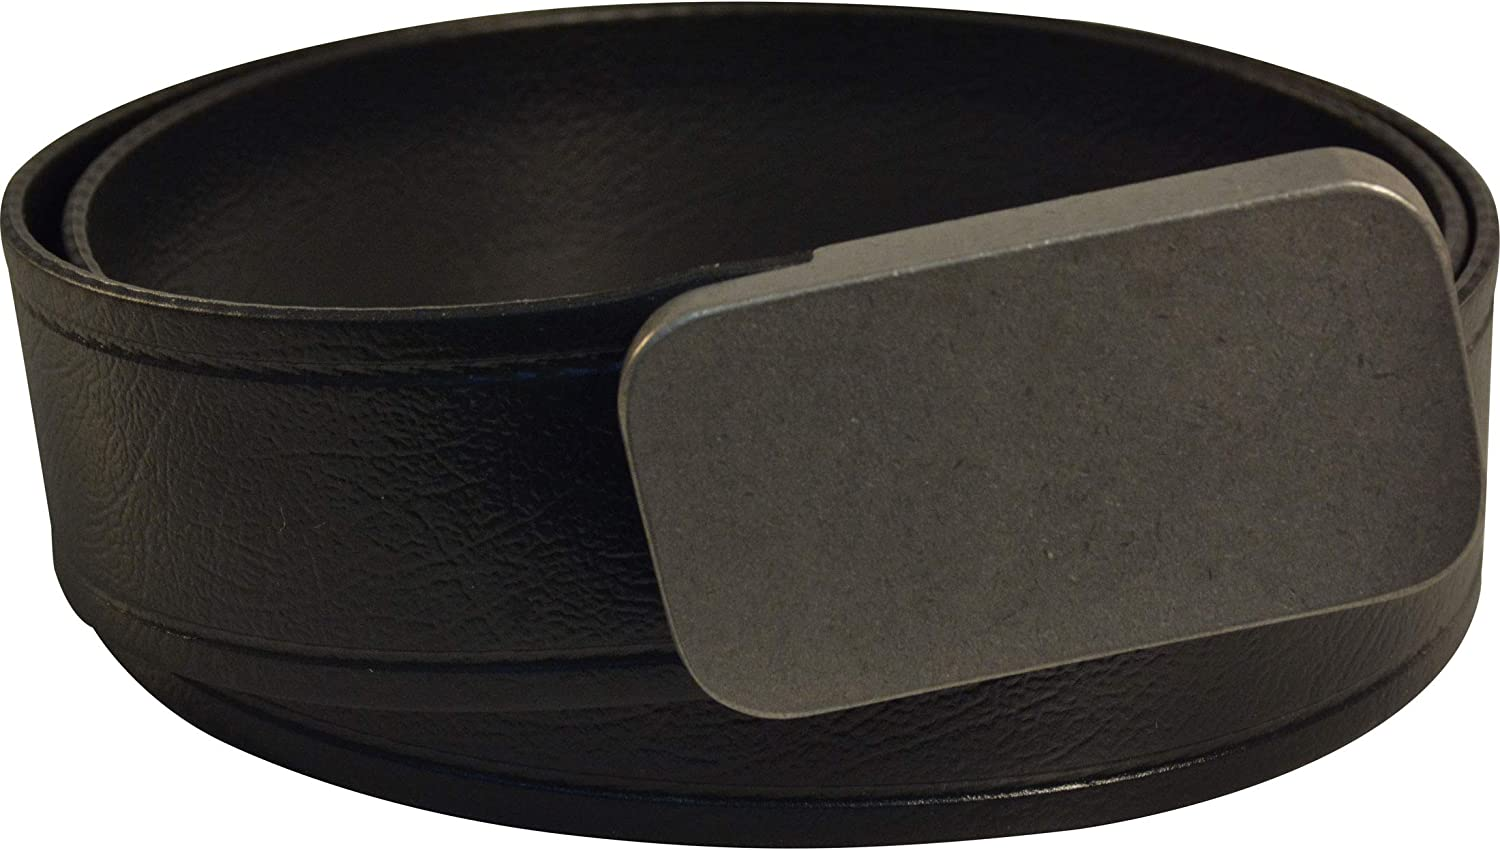 Lenwood Leather Blunt Force Trauma Webbing Belt 1.5 Stainless Steel Buckle PVC Coated Polyester